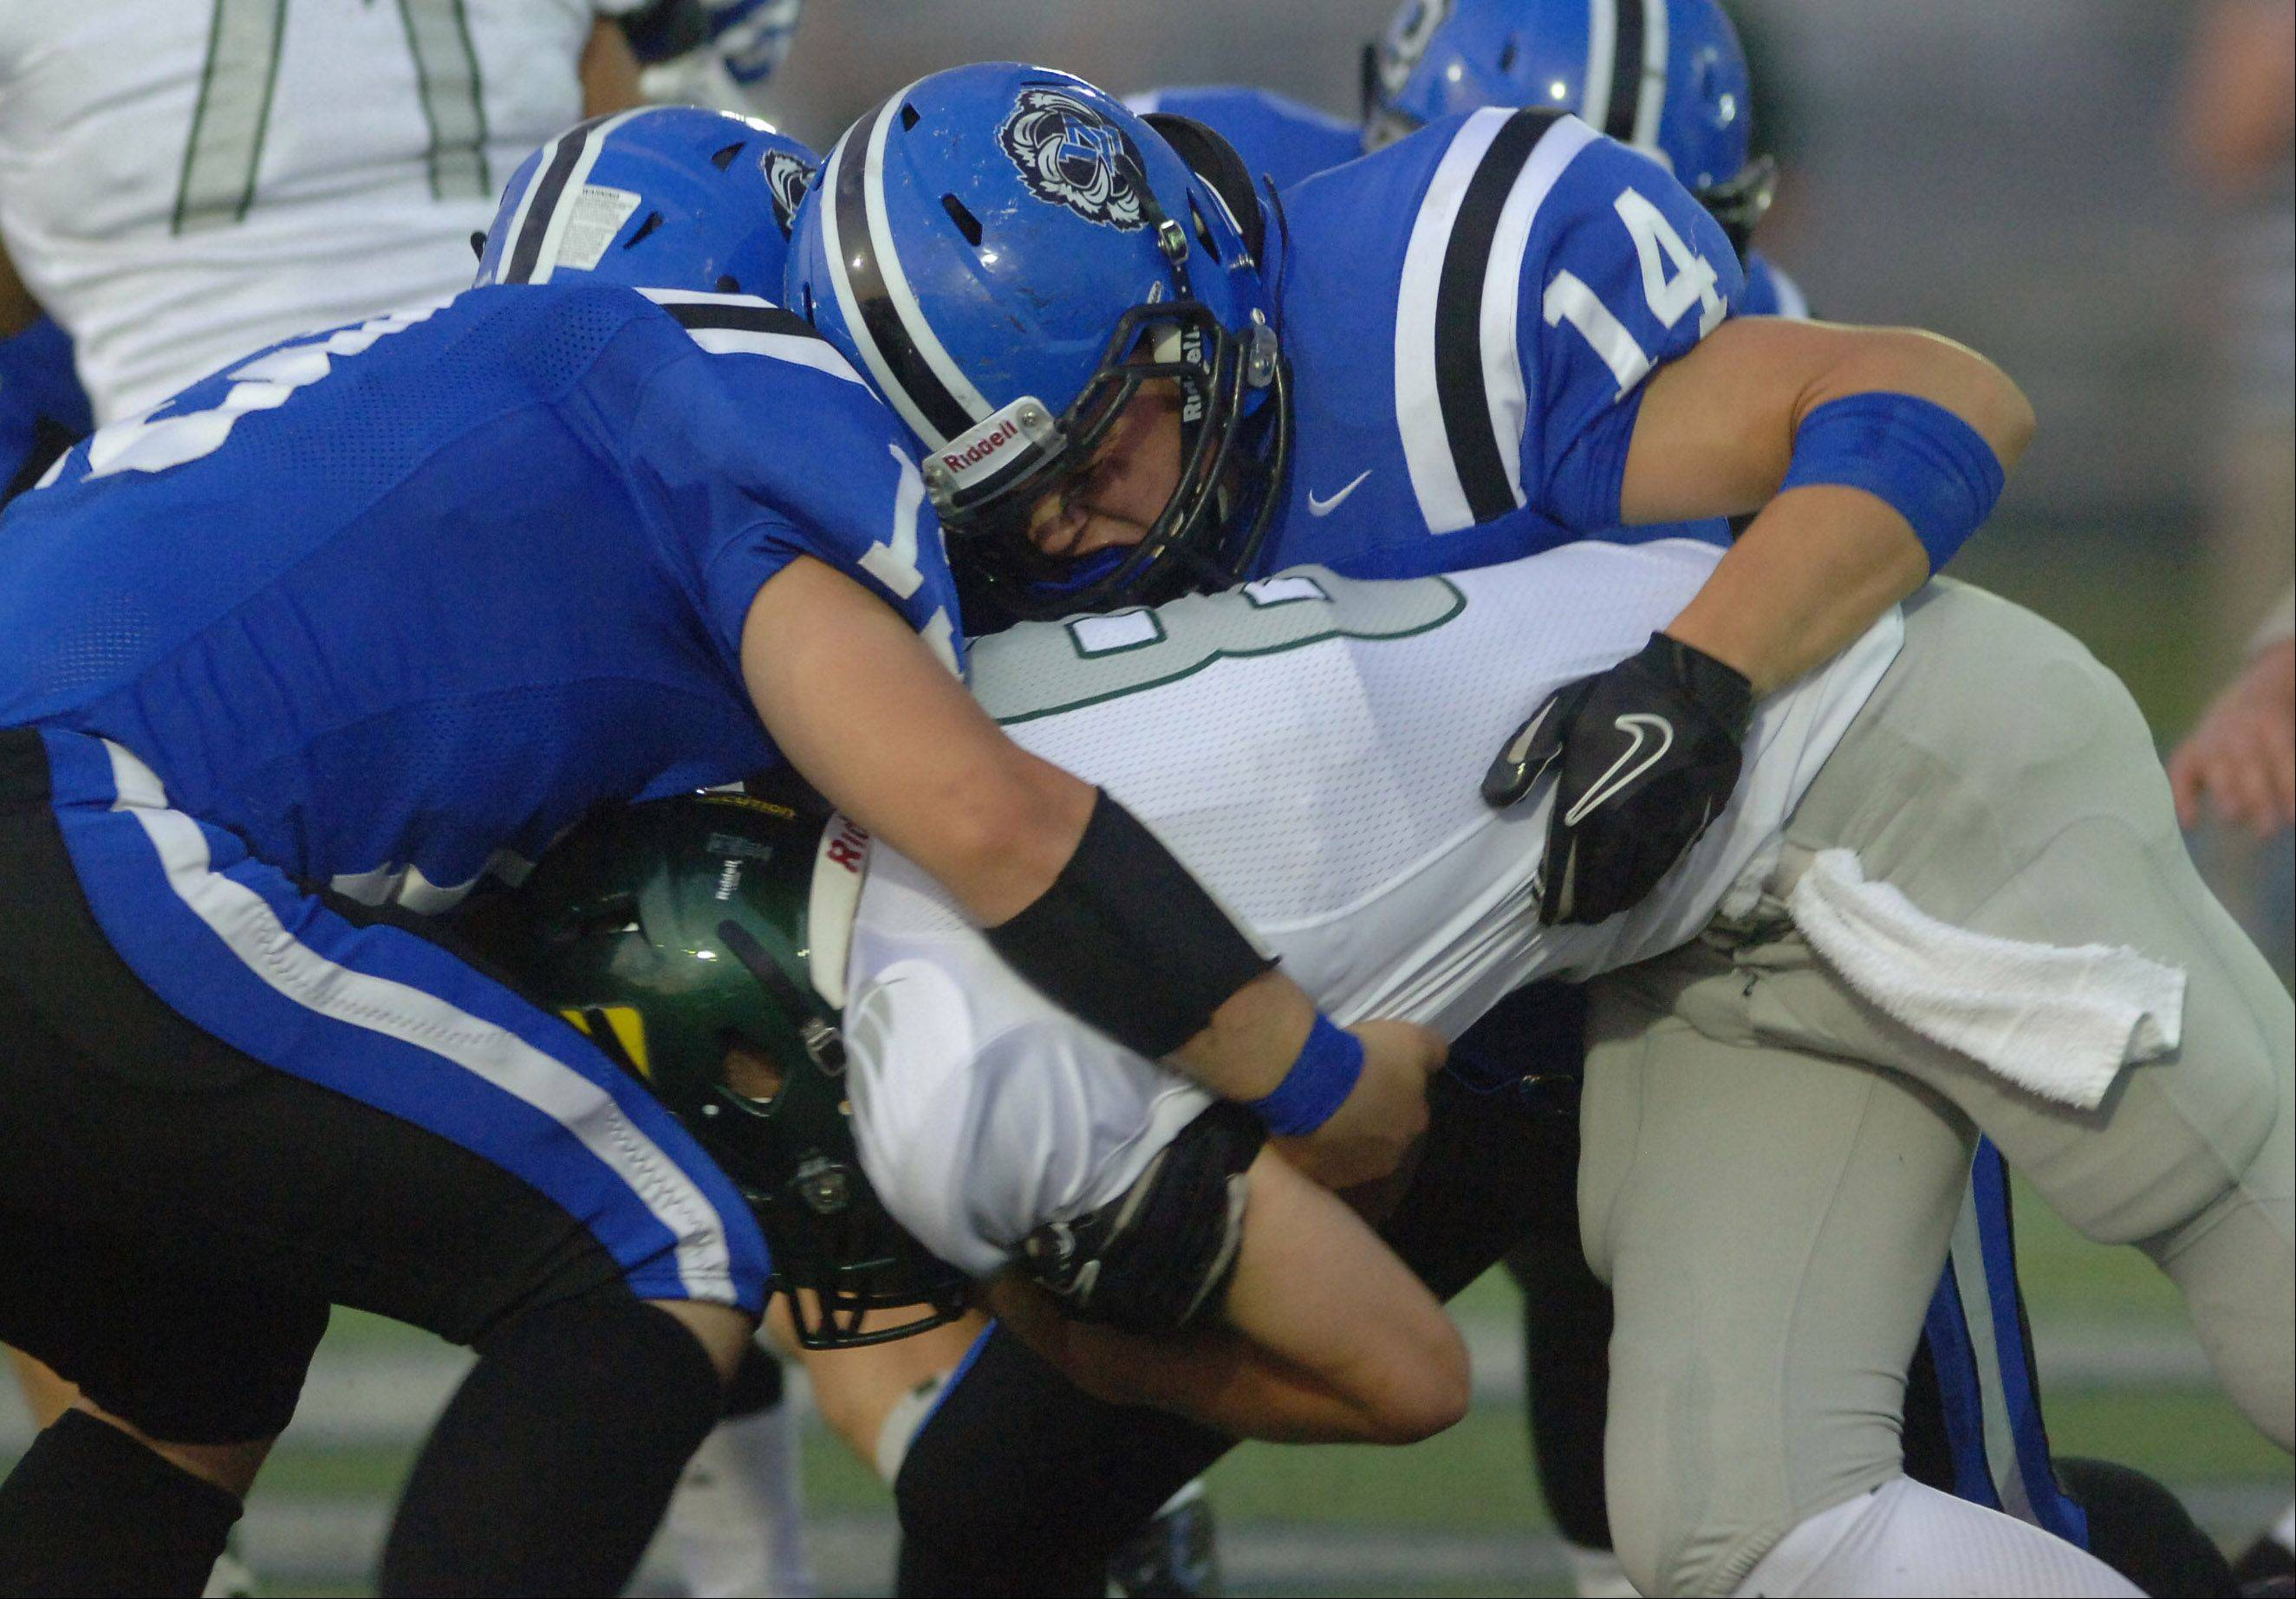 Lake Zurich's Christopher Lehtinen, left, and Tanner Kiser wrap up Fremd quarterback Sam Beutler on Friday night in Lake Zurich.